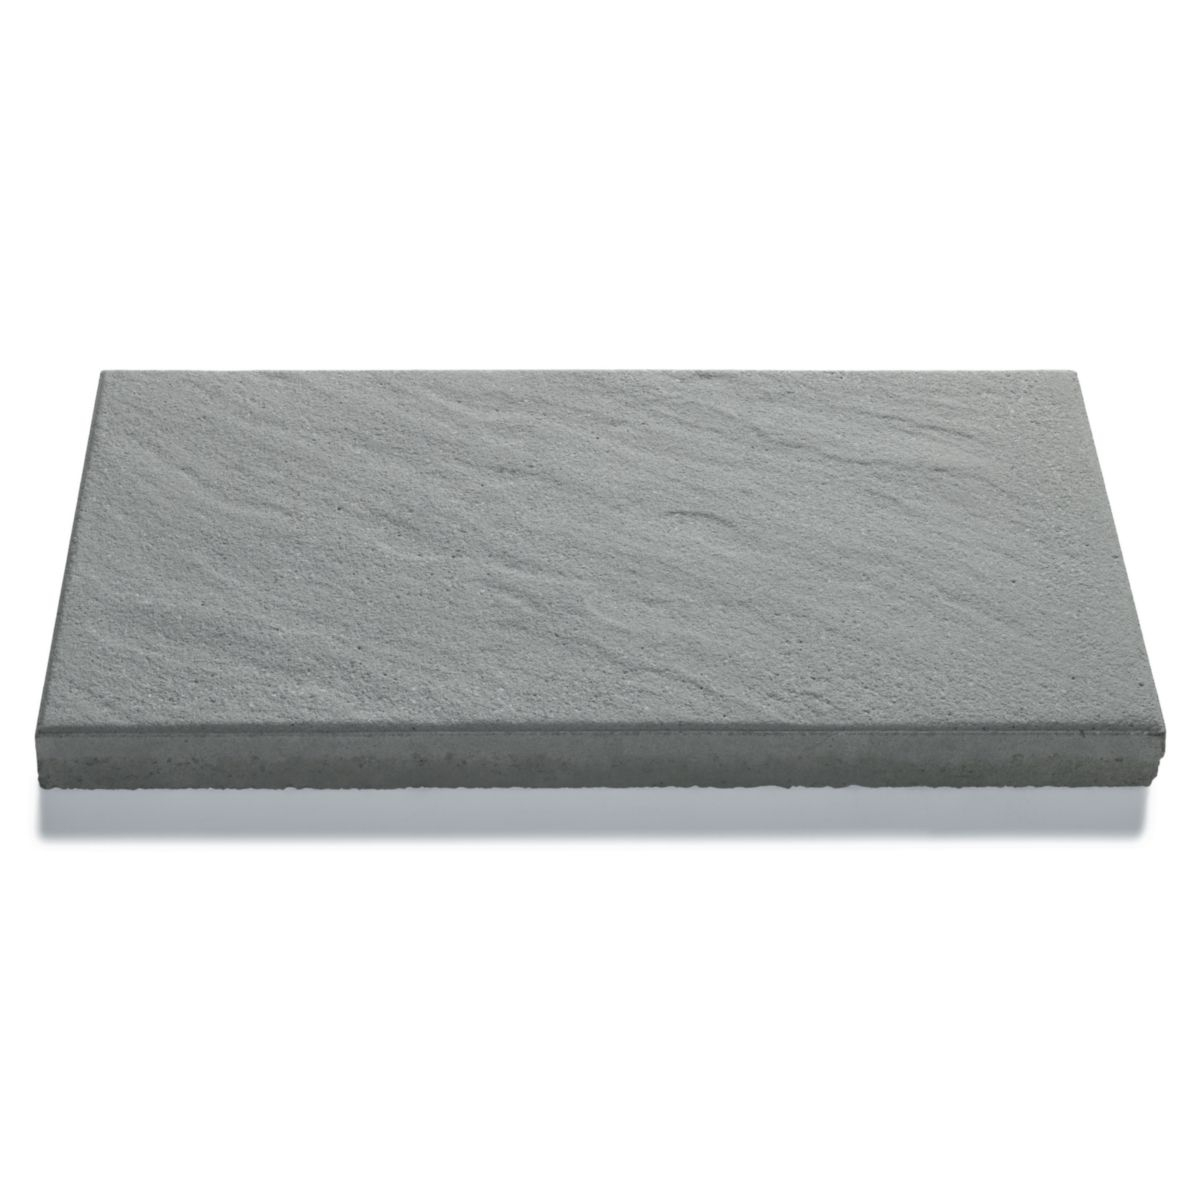 Dalle Montiano Cleantop - Anthracite - 60X30X4,2 Cm encequiconcerne Margelle Piscine Point P